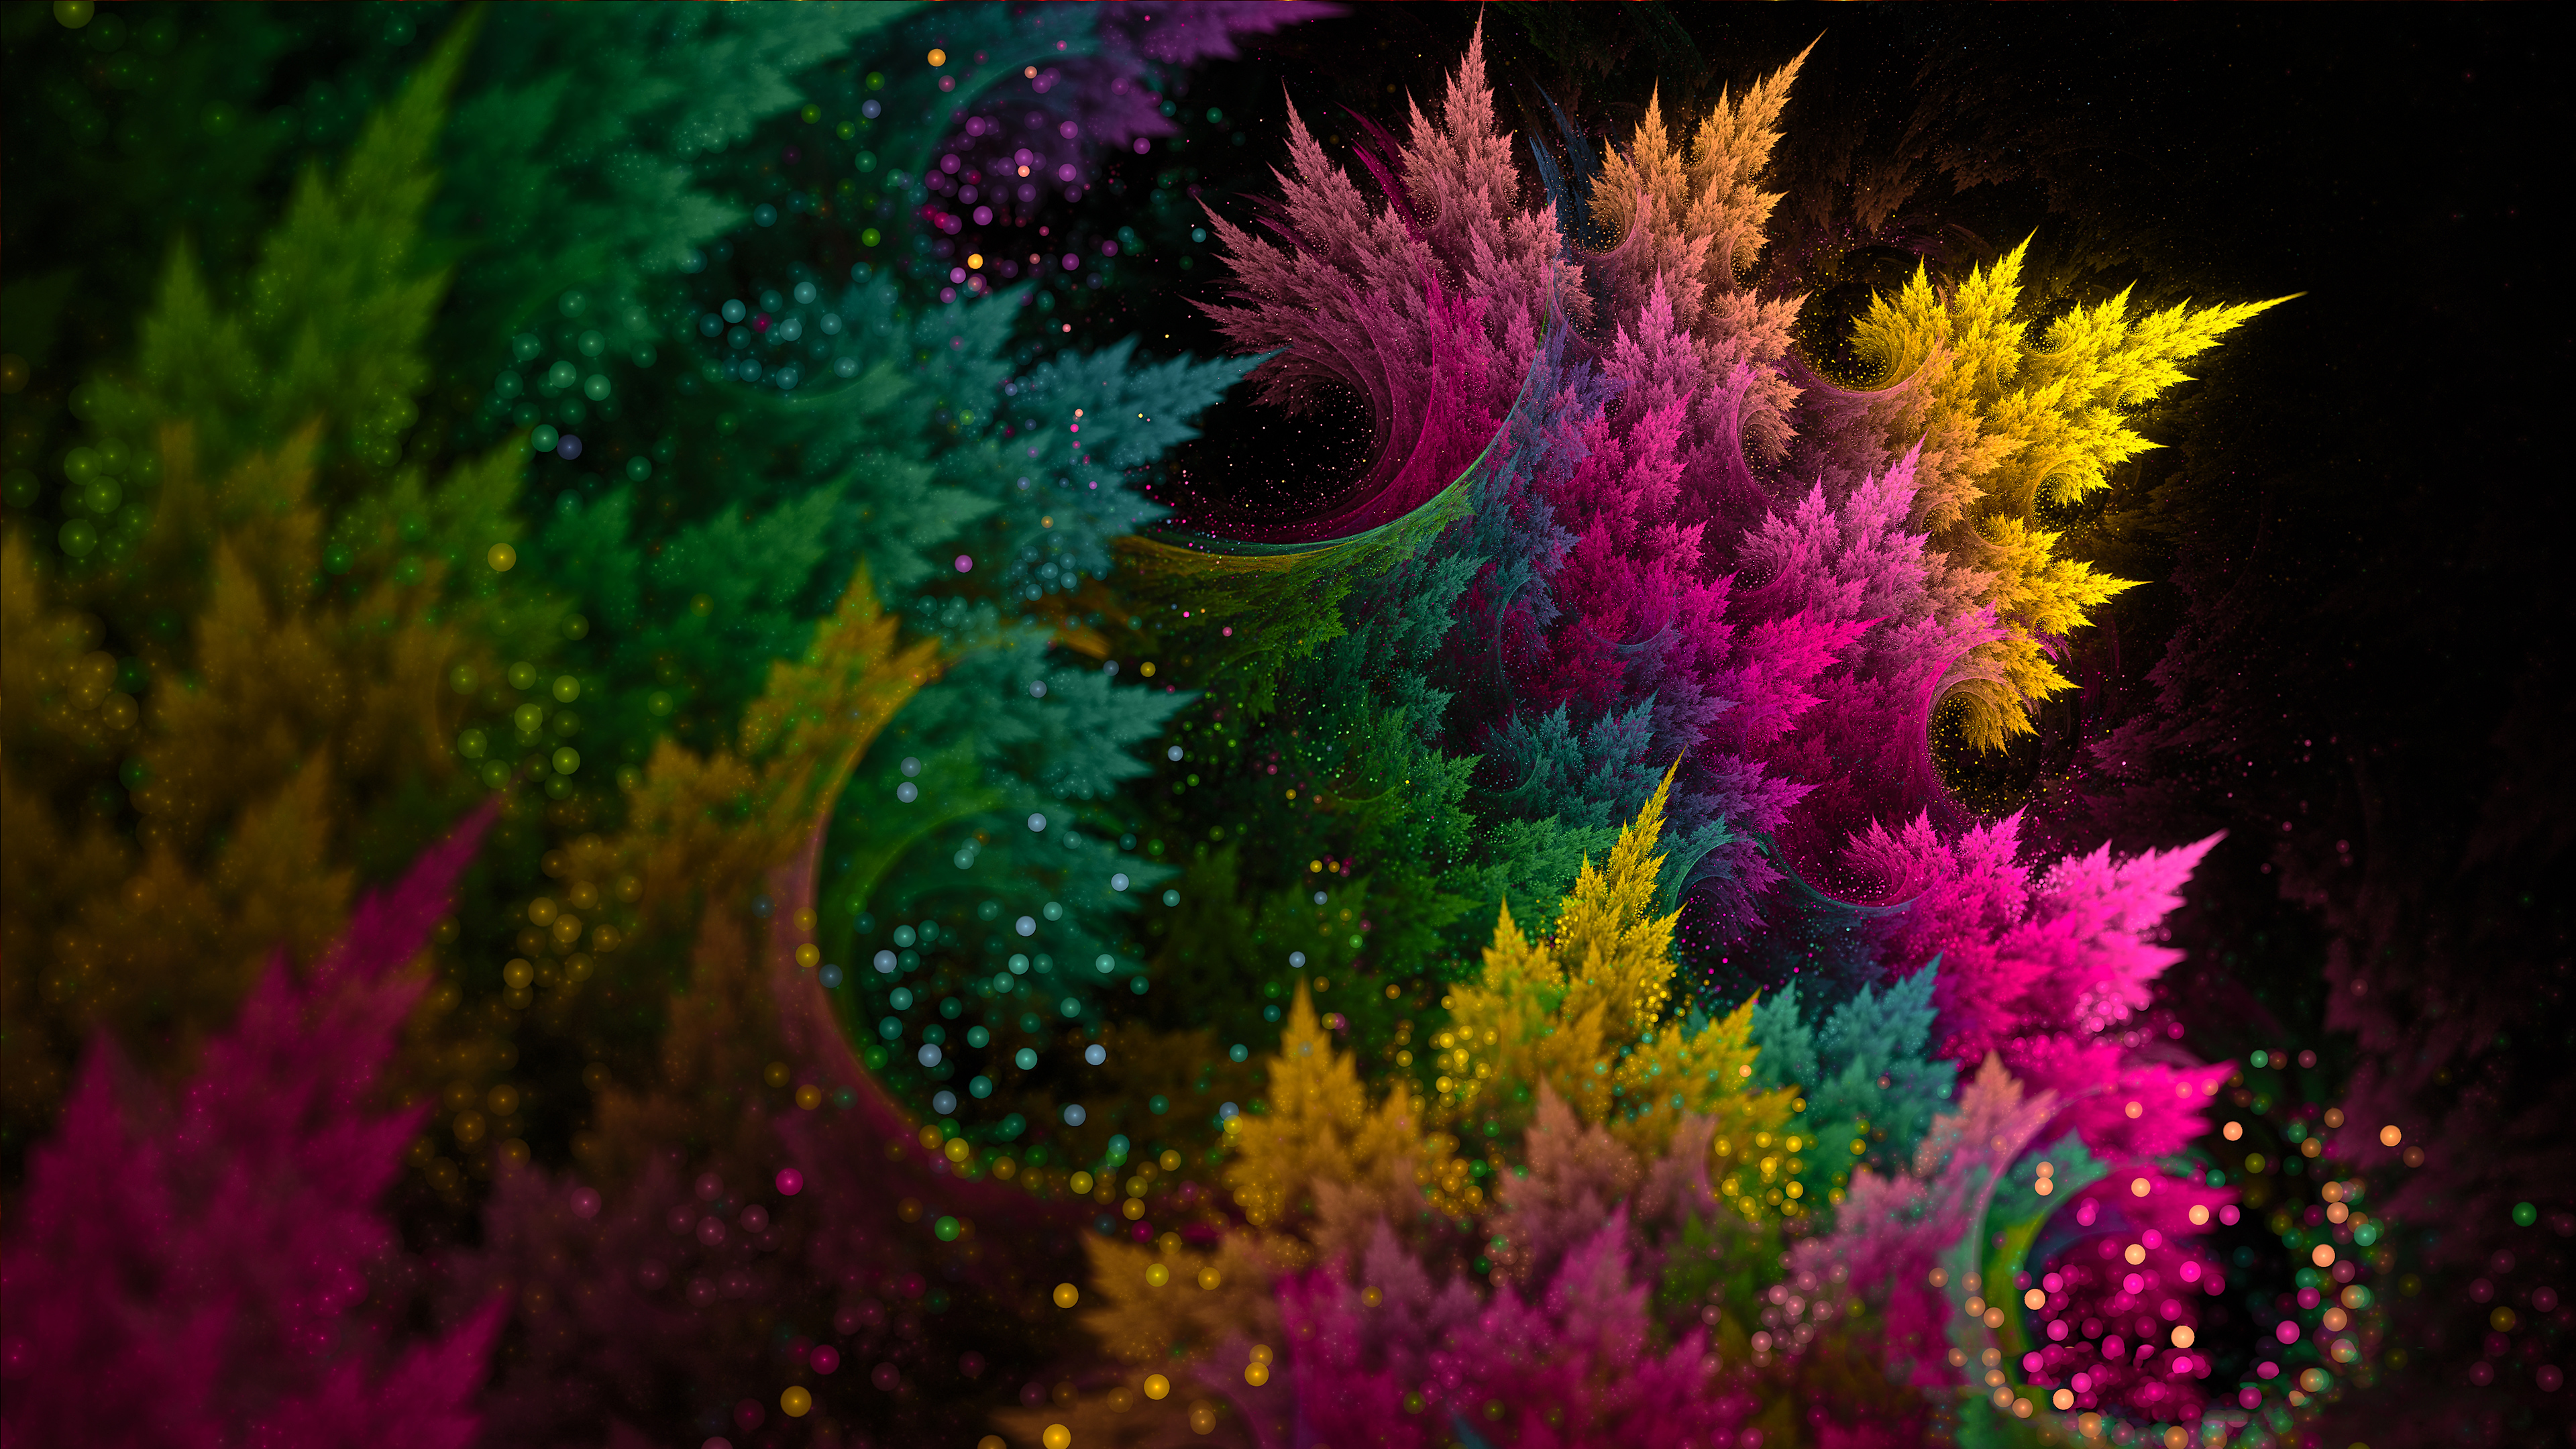 colors of mind 1570394875 - Colors Of Mind - hd-wallpapers, digital art wallpapers, deviantart wallpapers, colorful wallpapers, abstract wallpapers, 4k-wallpapers